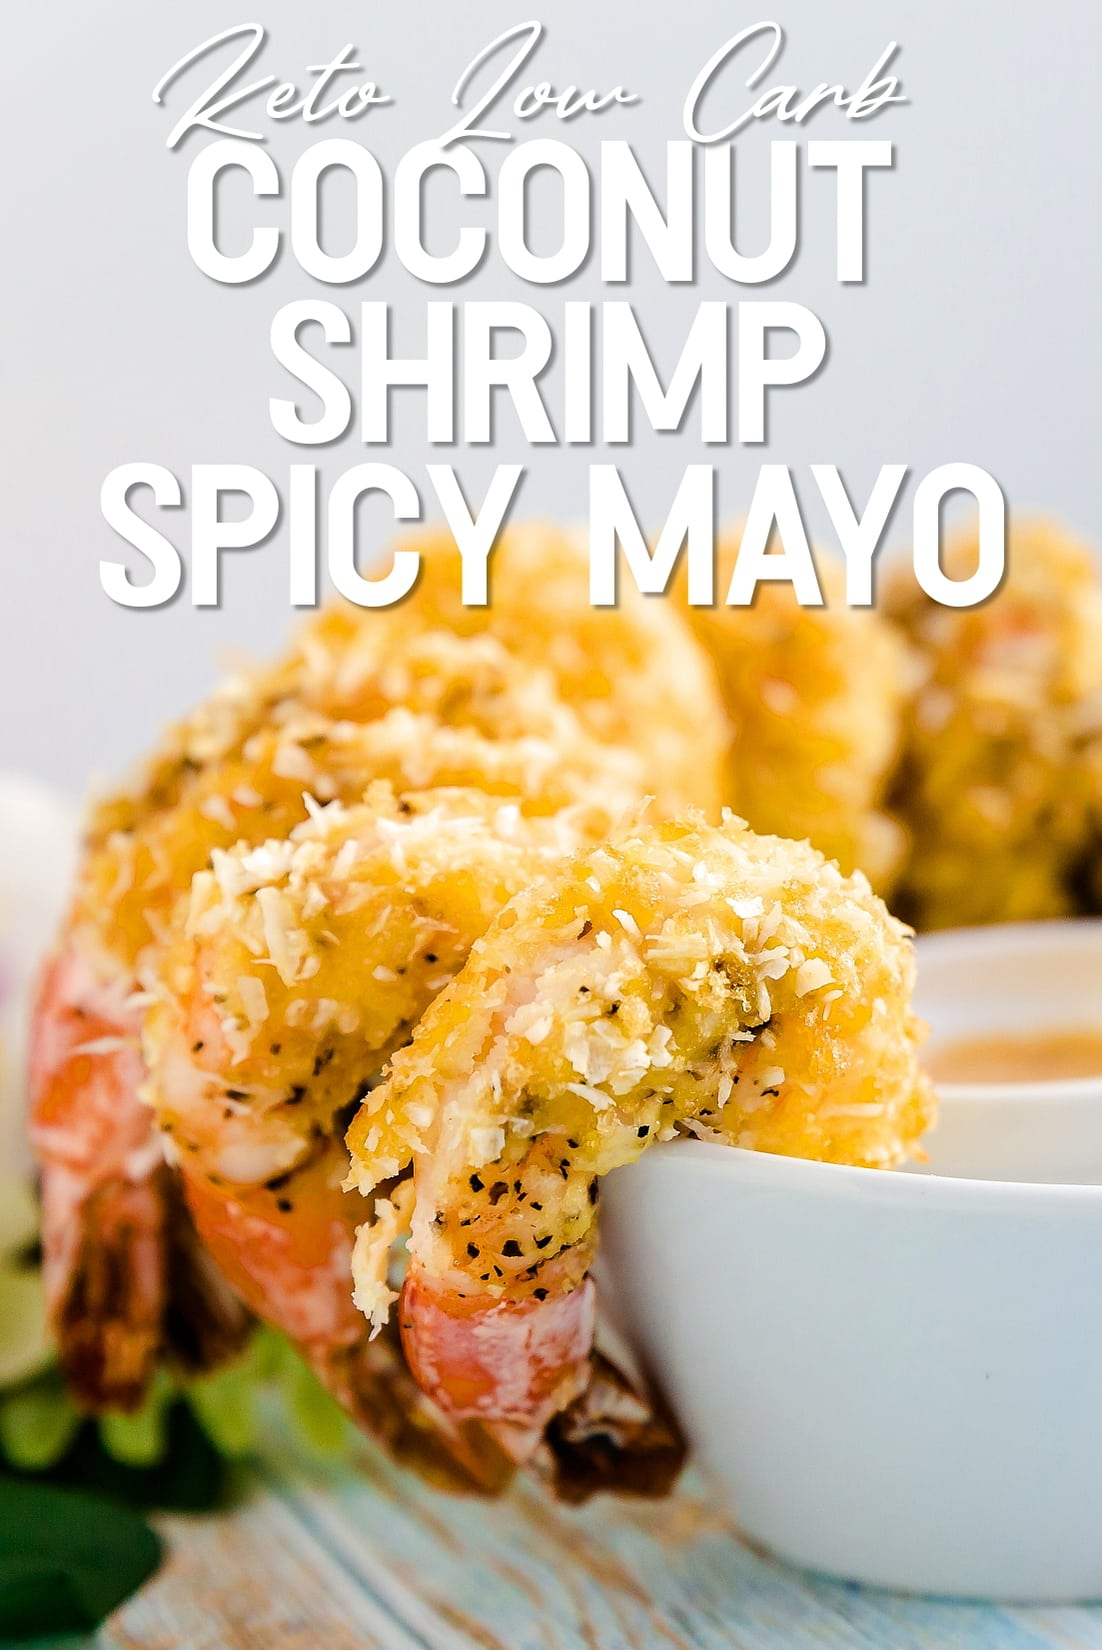 Coconut Shrimp with Japanese Spicy Mayo Sauce close up